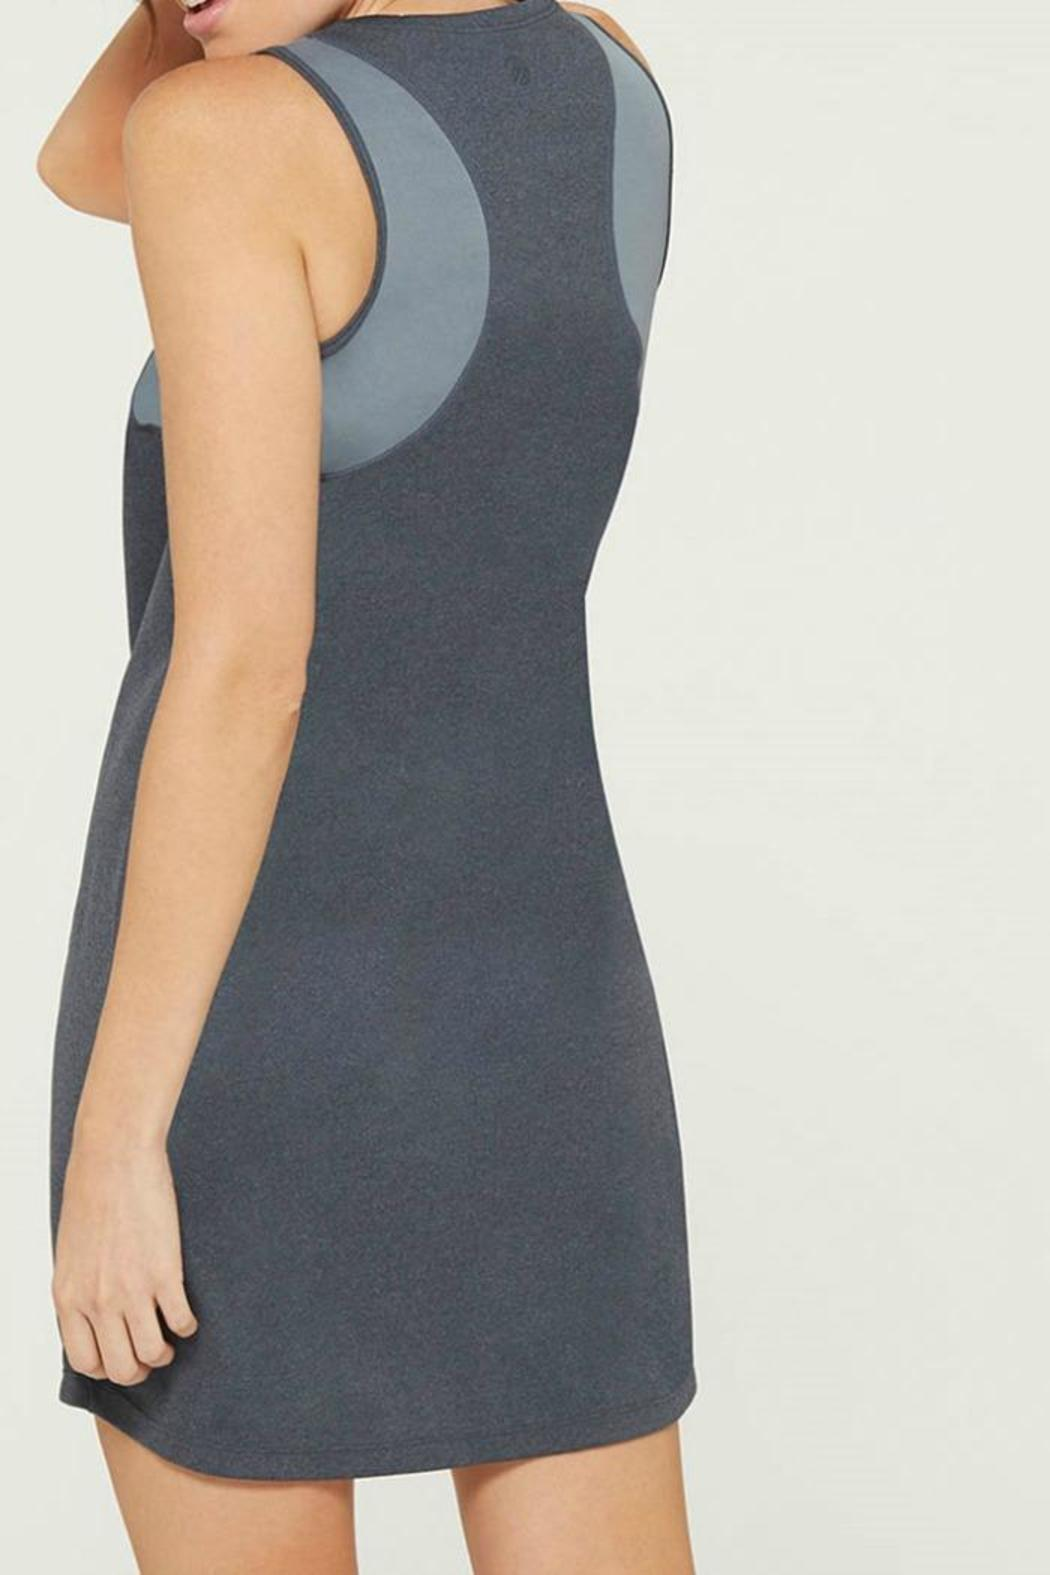 MPG Sport Grey Tank Dress - Front Full Image